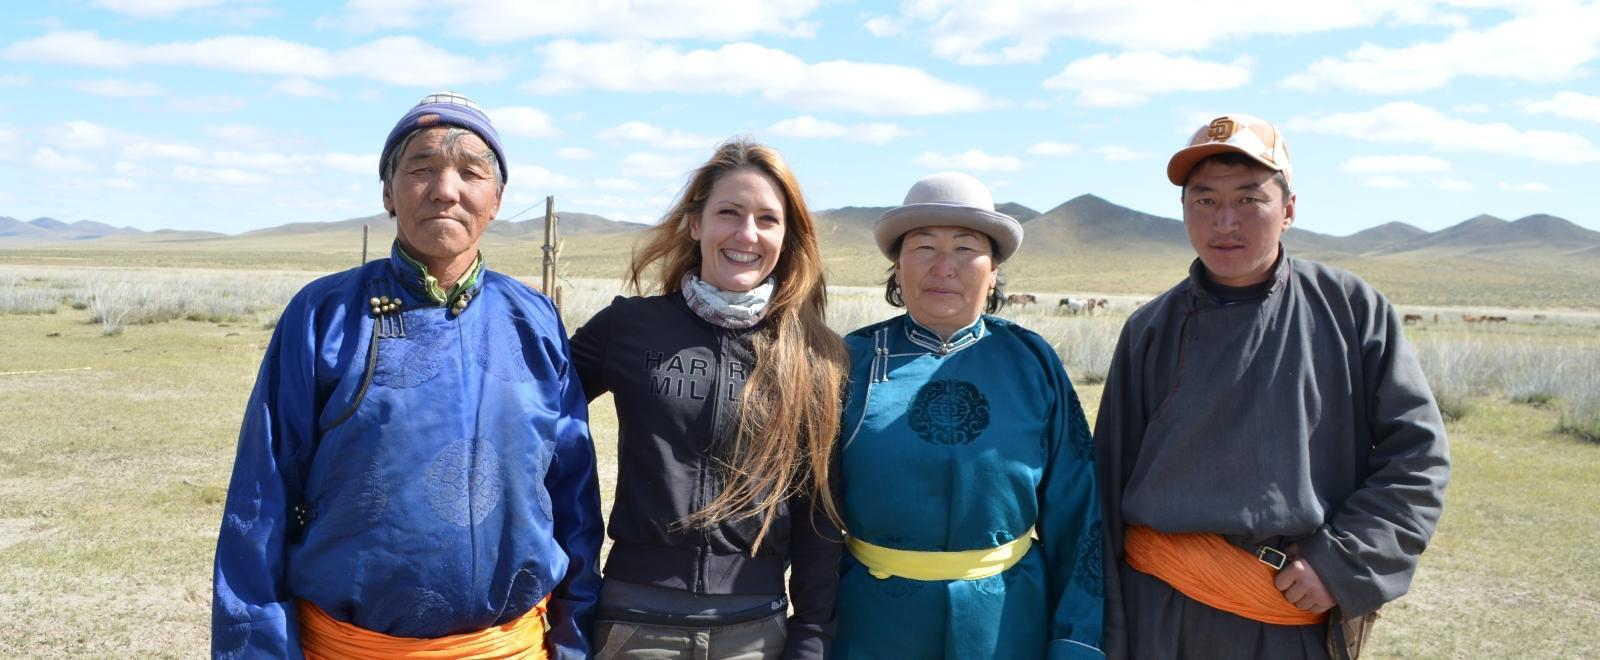 A Projects Abroad volunteer spends time at her host family accommodation while volunteering in Mongolia.